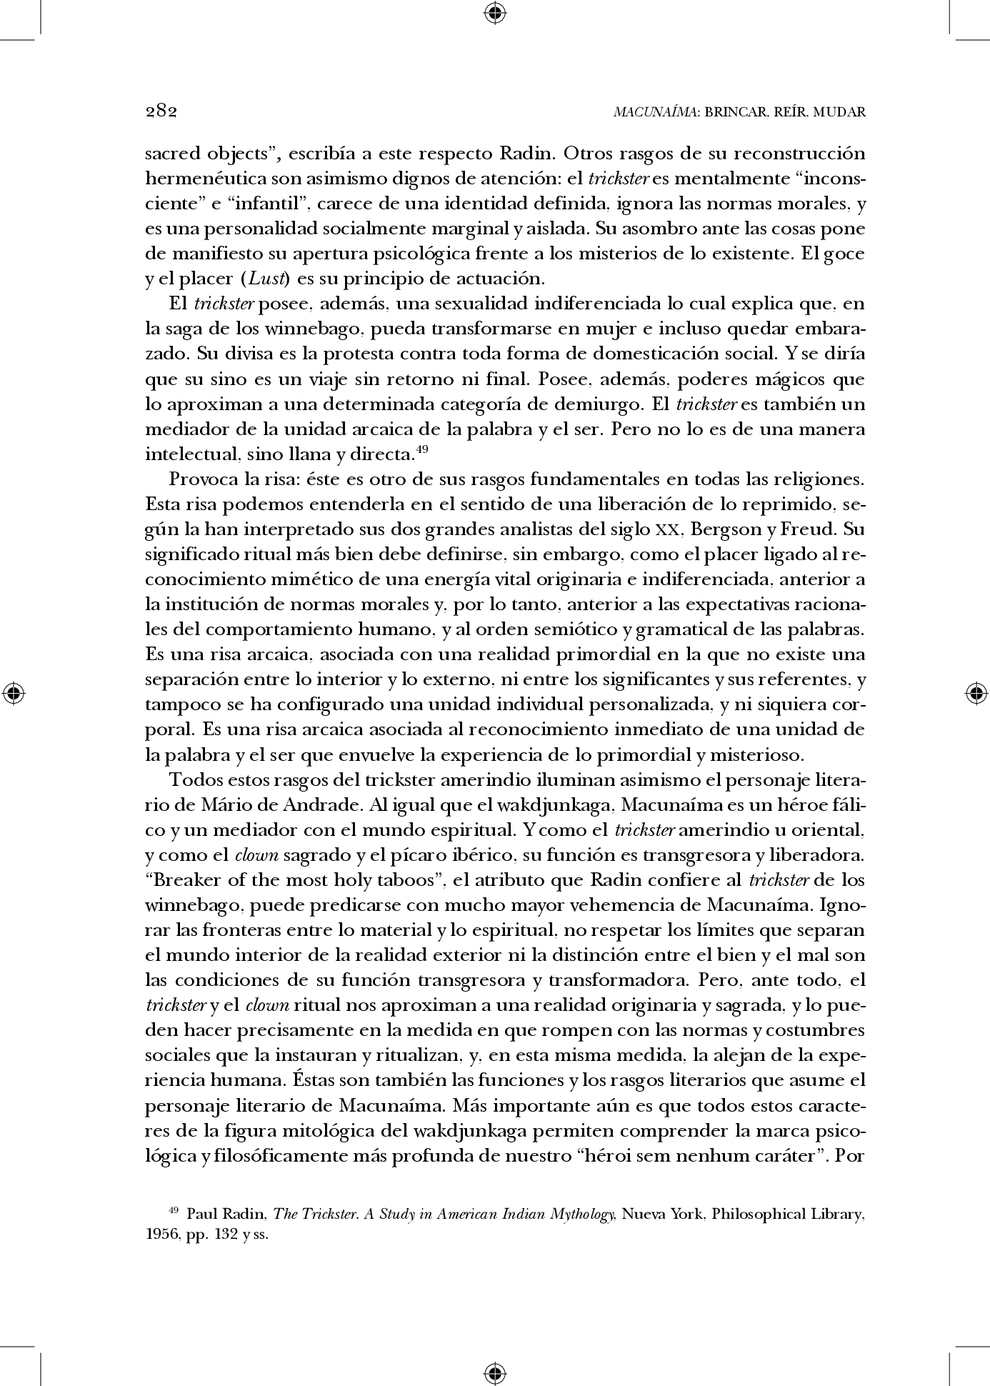 Page 278